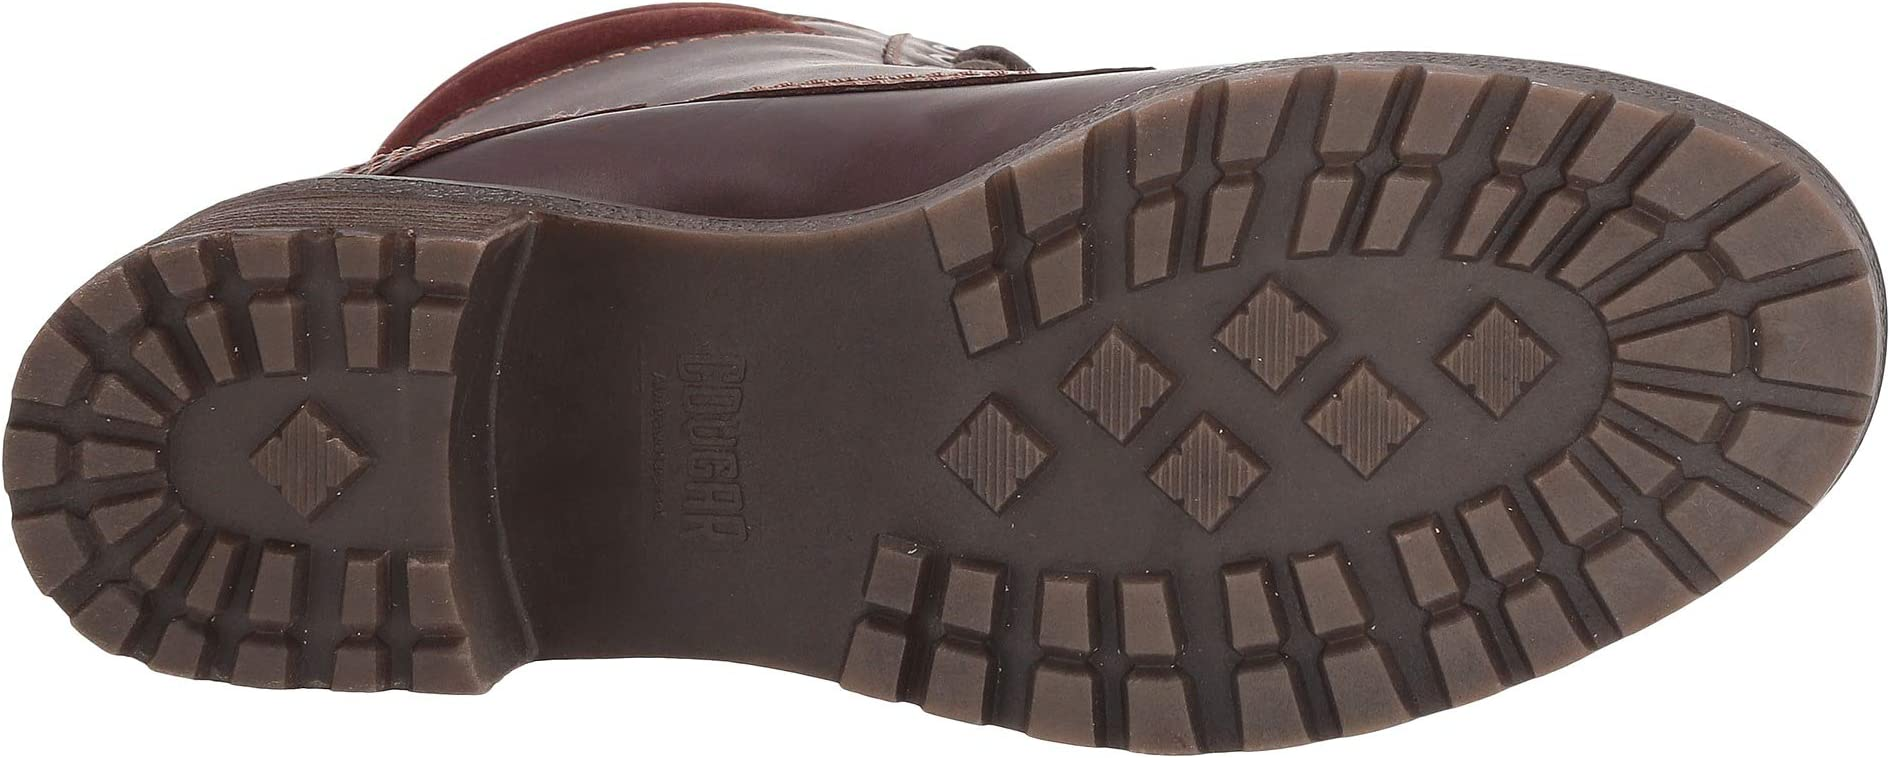 Cougar Delson Waterproof | Women's shoes | 2020 Newest